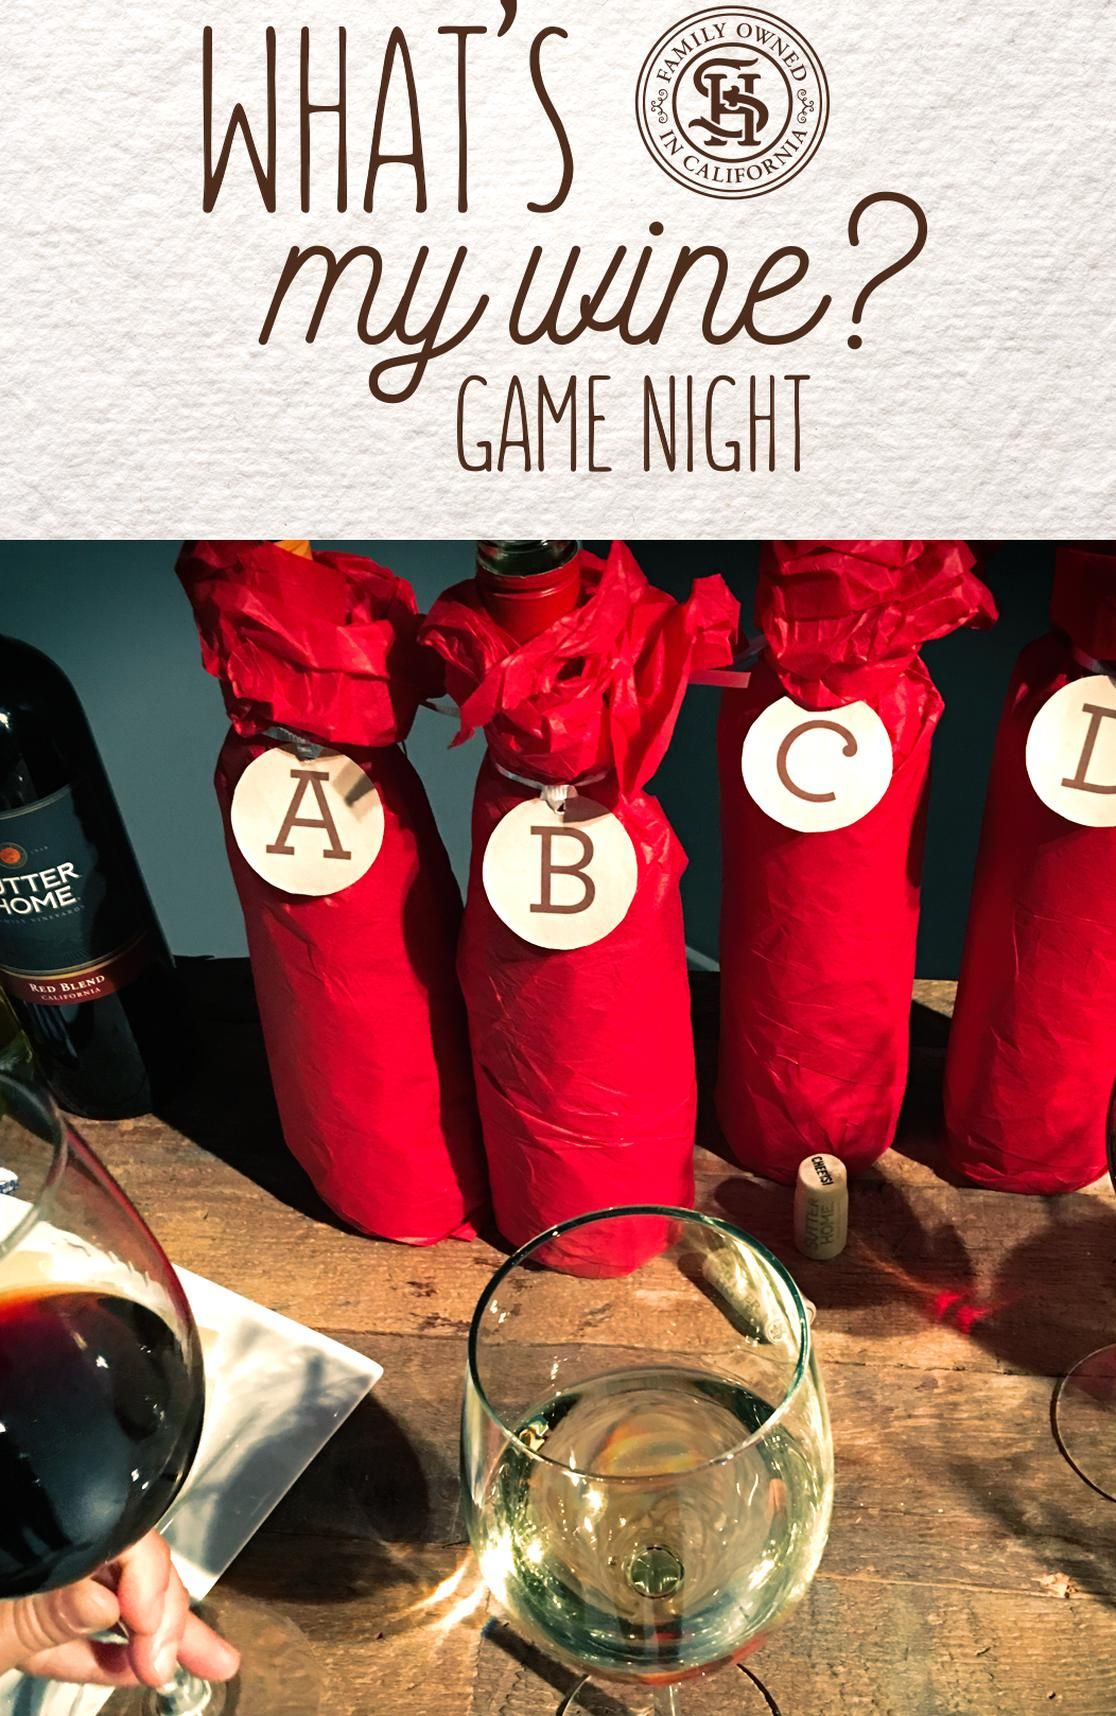 Uncork The Wines Pour Out The Fun And Play Our New Sutter Home Whats My Wine Game Its Blind Wine Tasting A In 2020 Wine Games Blind Wine Tasting Wine And